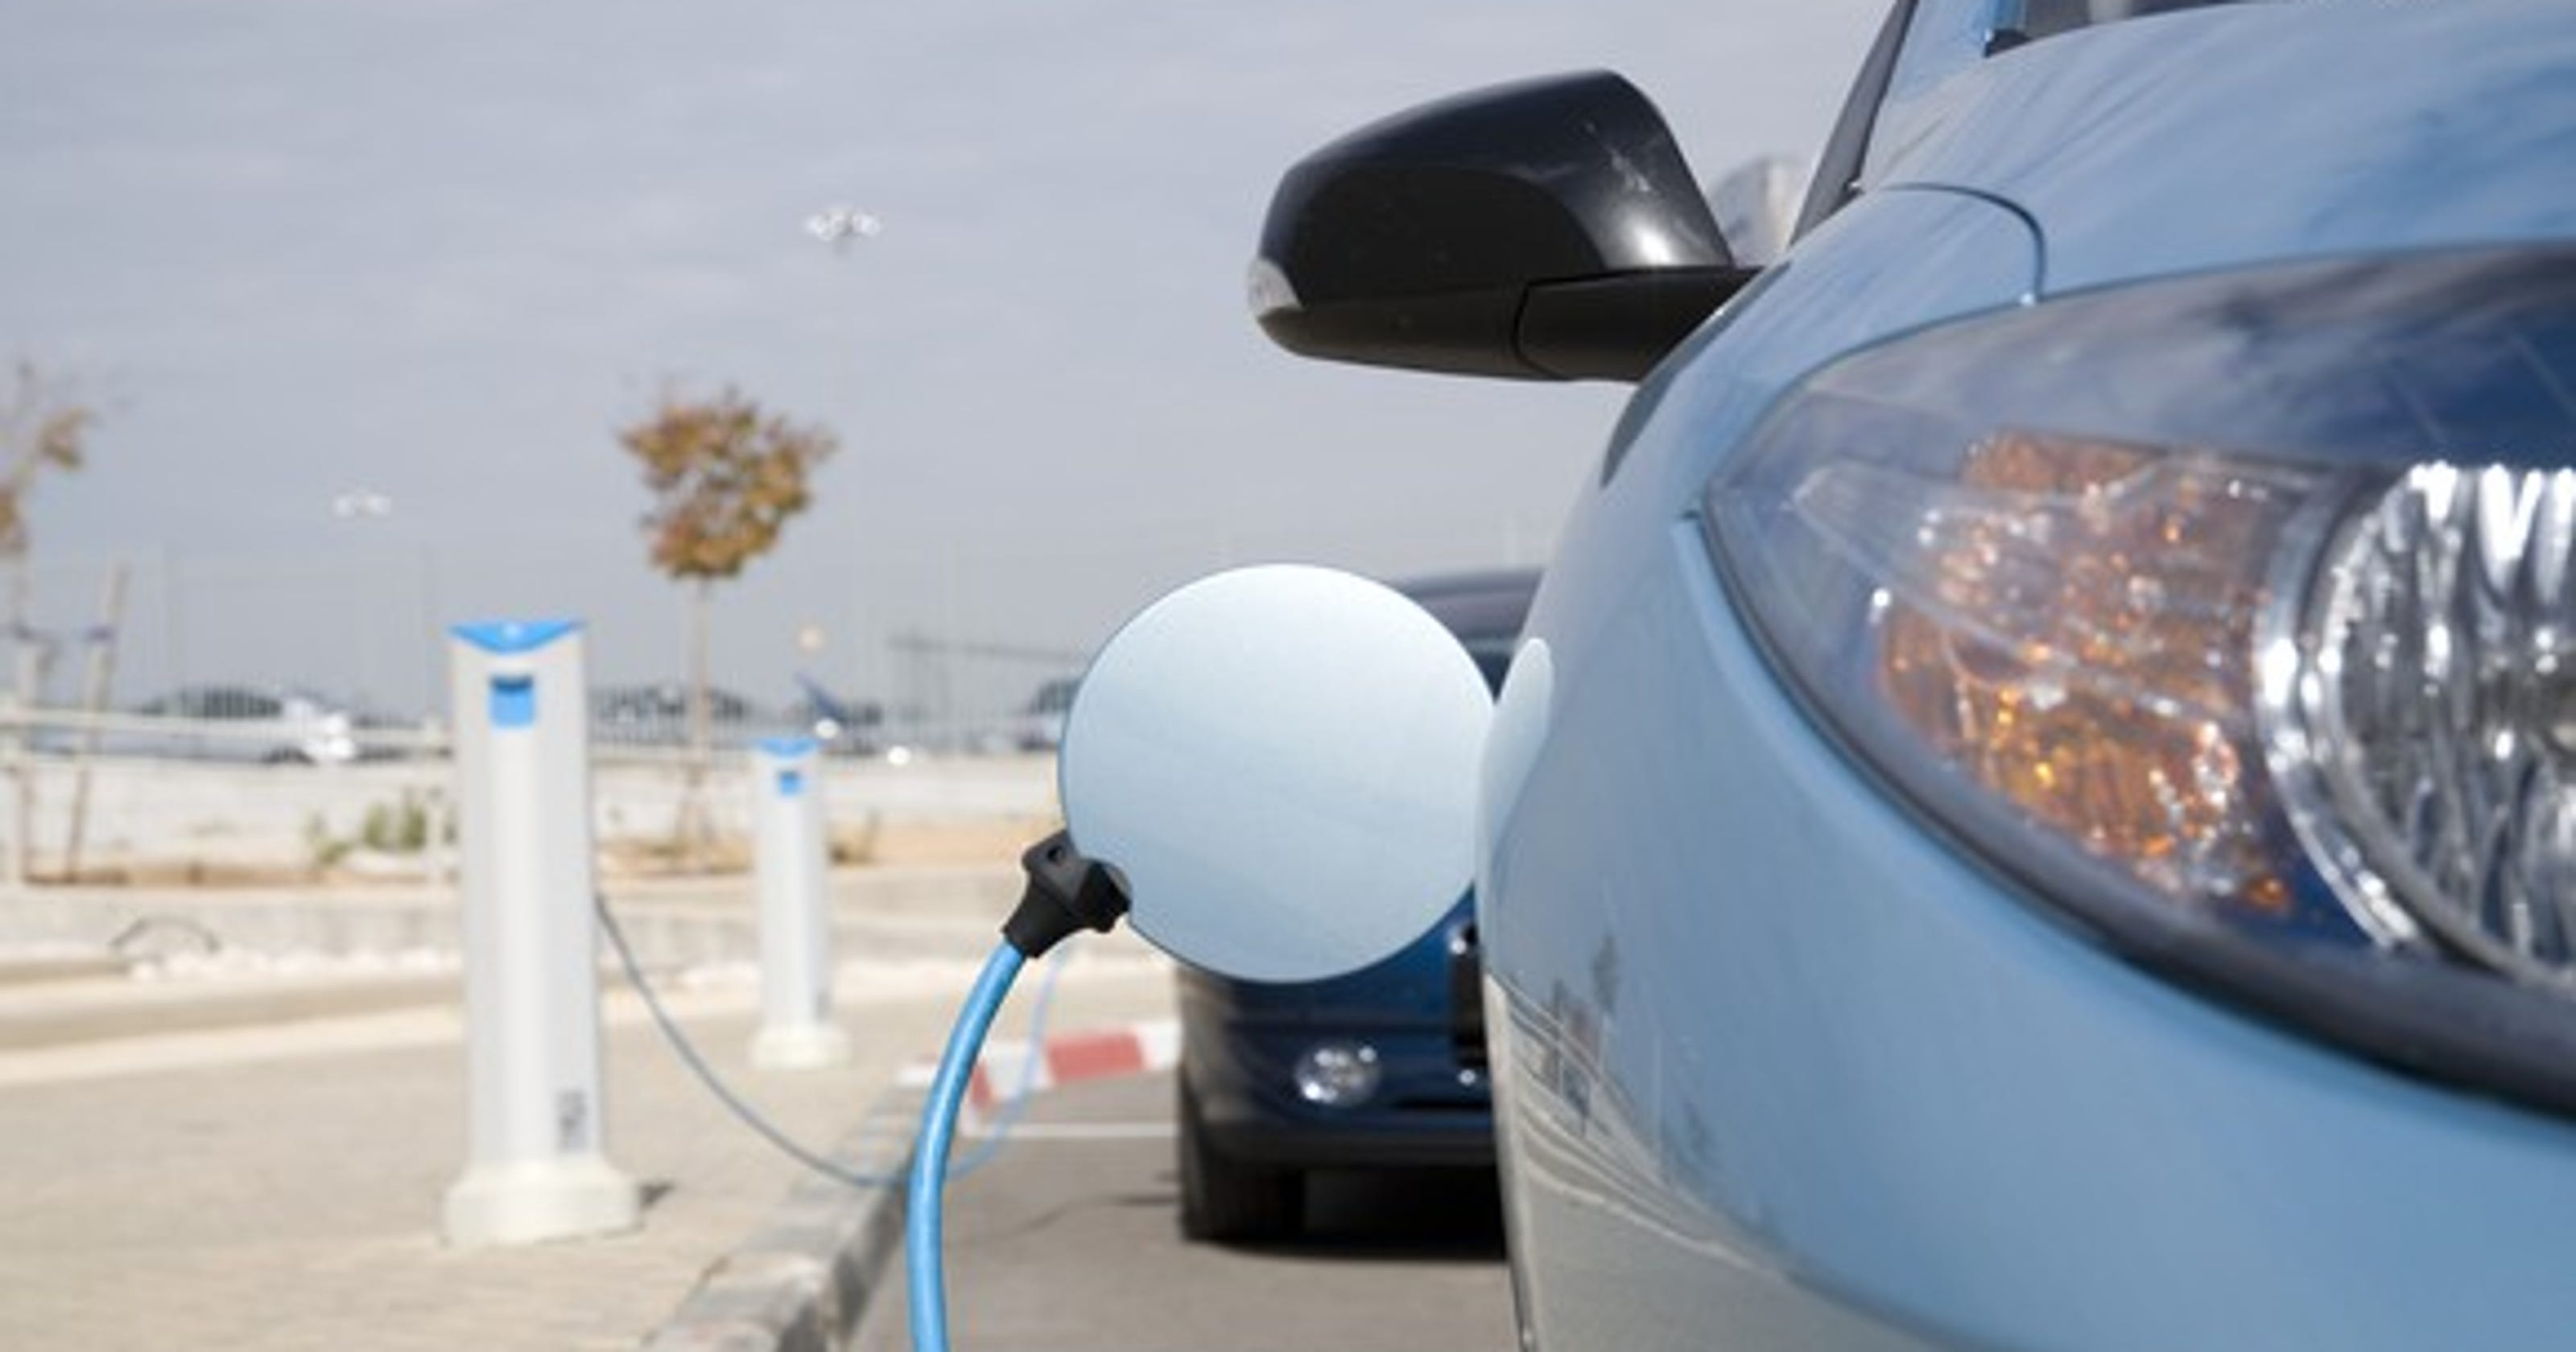 Electric cars increasingly appealing to Americans, AAA study